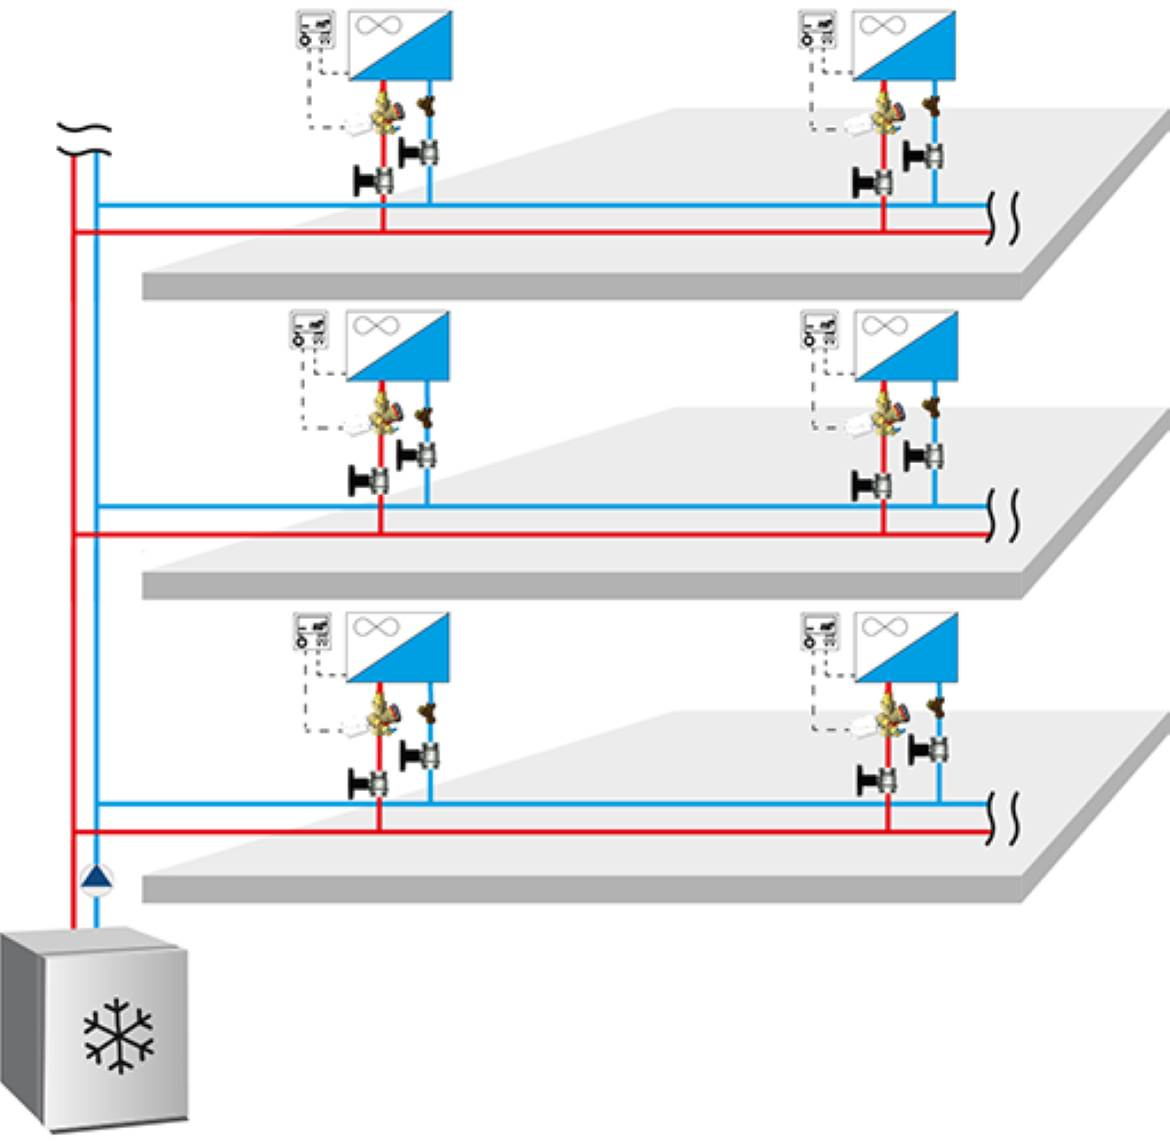 Cooling system with fan coils with hydronic balancing